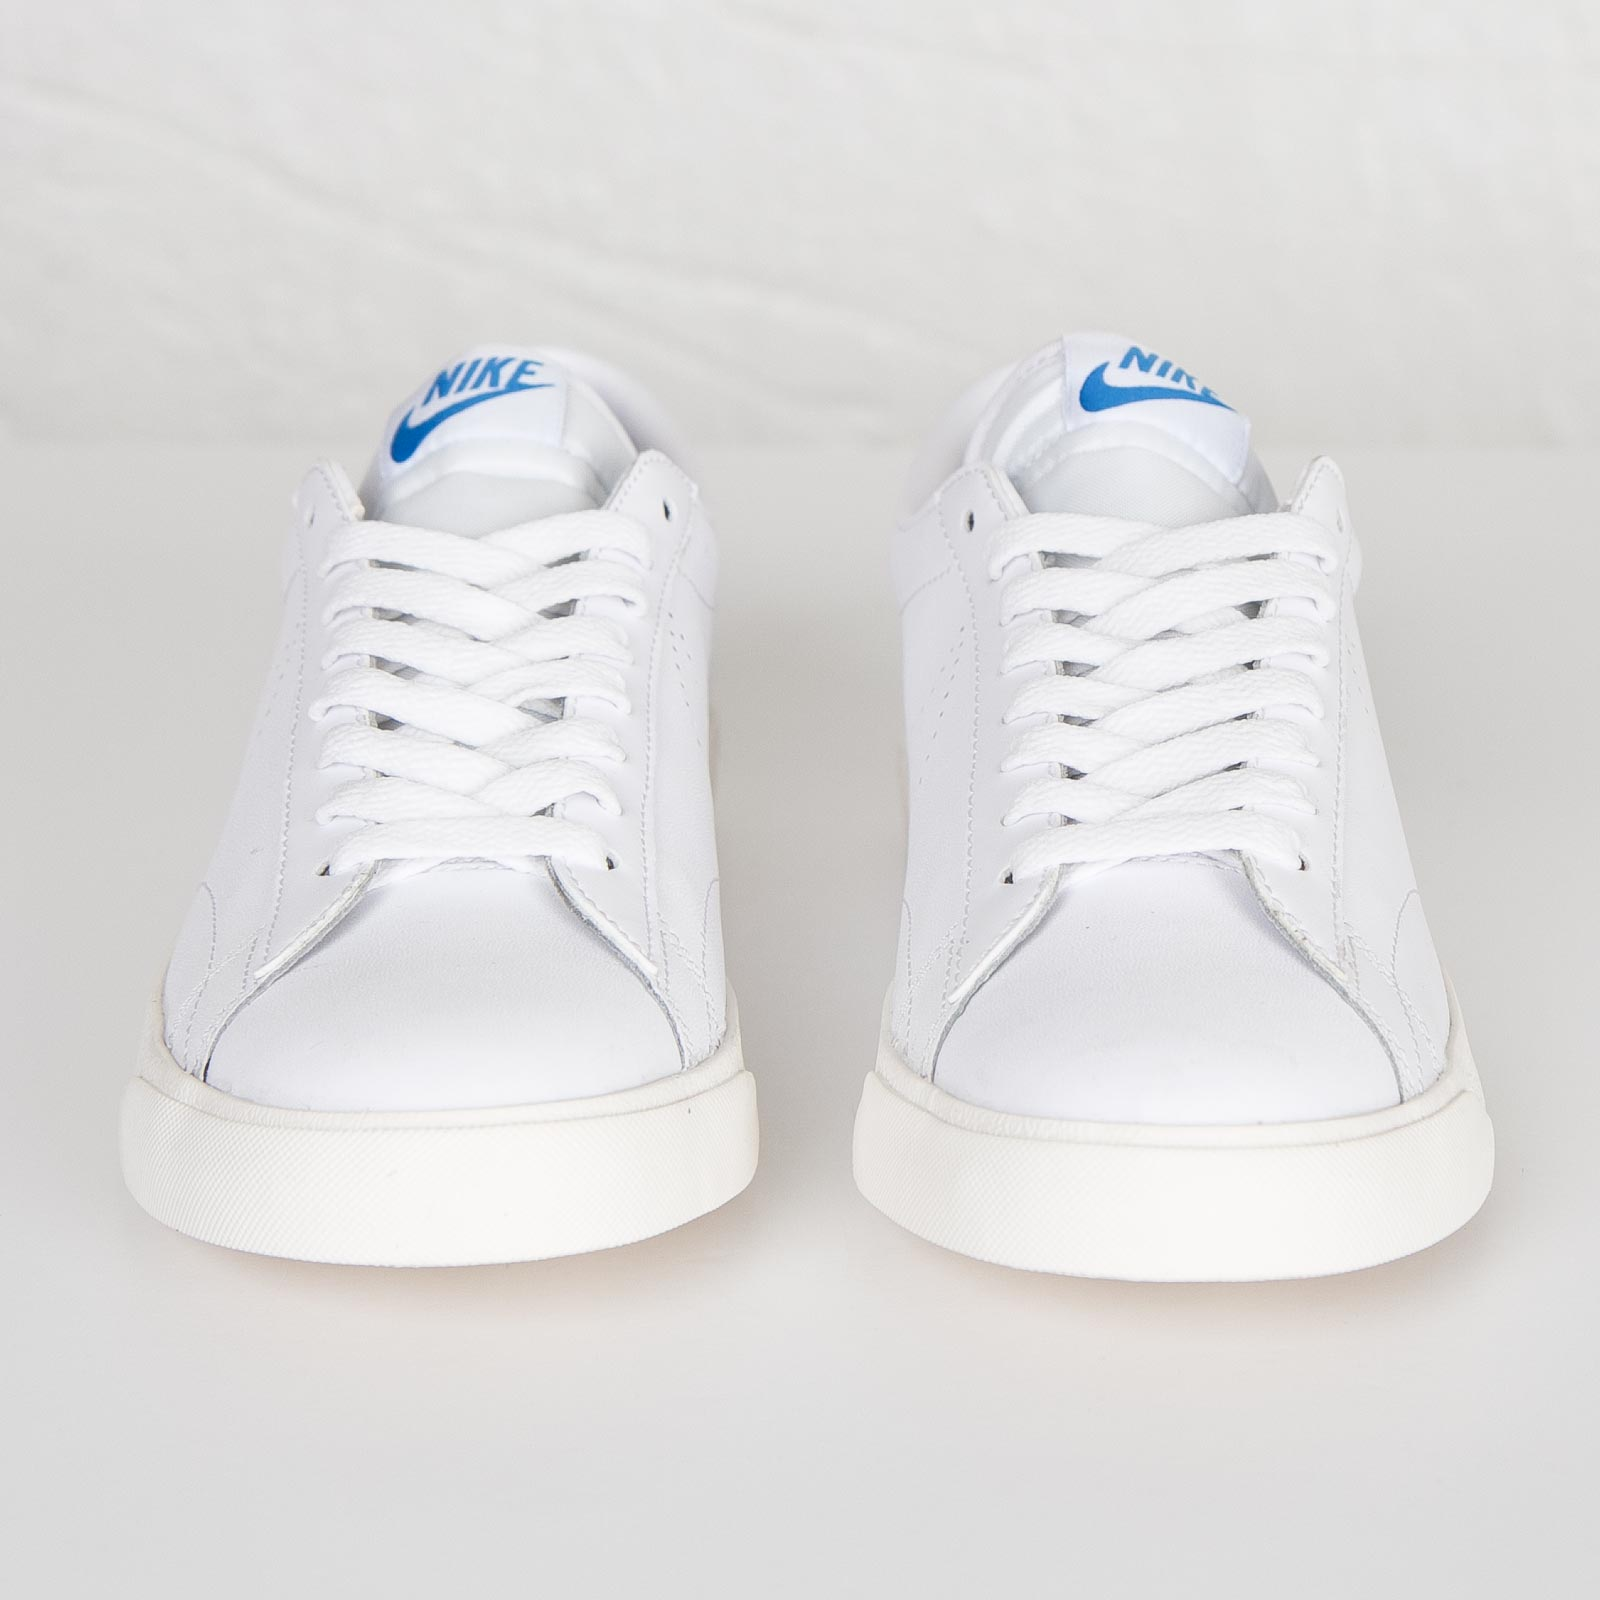 premium selection official photos usa cheap sale Nike Tennis Classic AC - 377812-116 - Sneakersnstuff ...